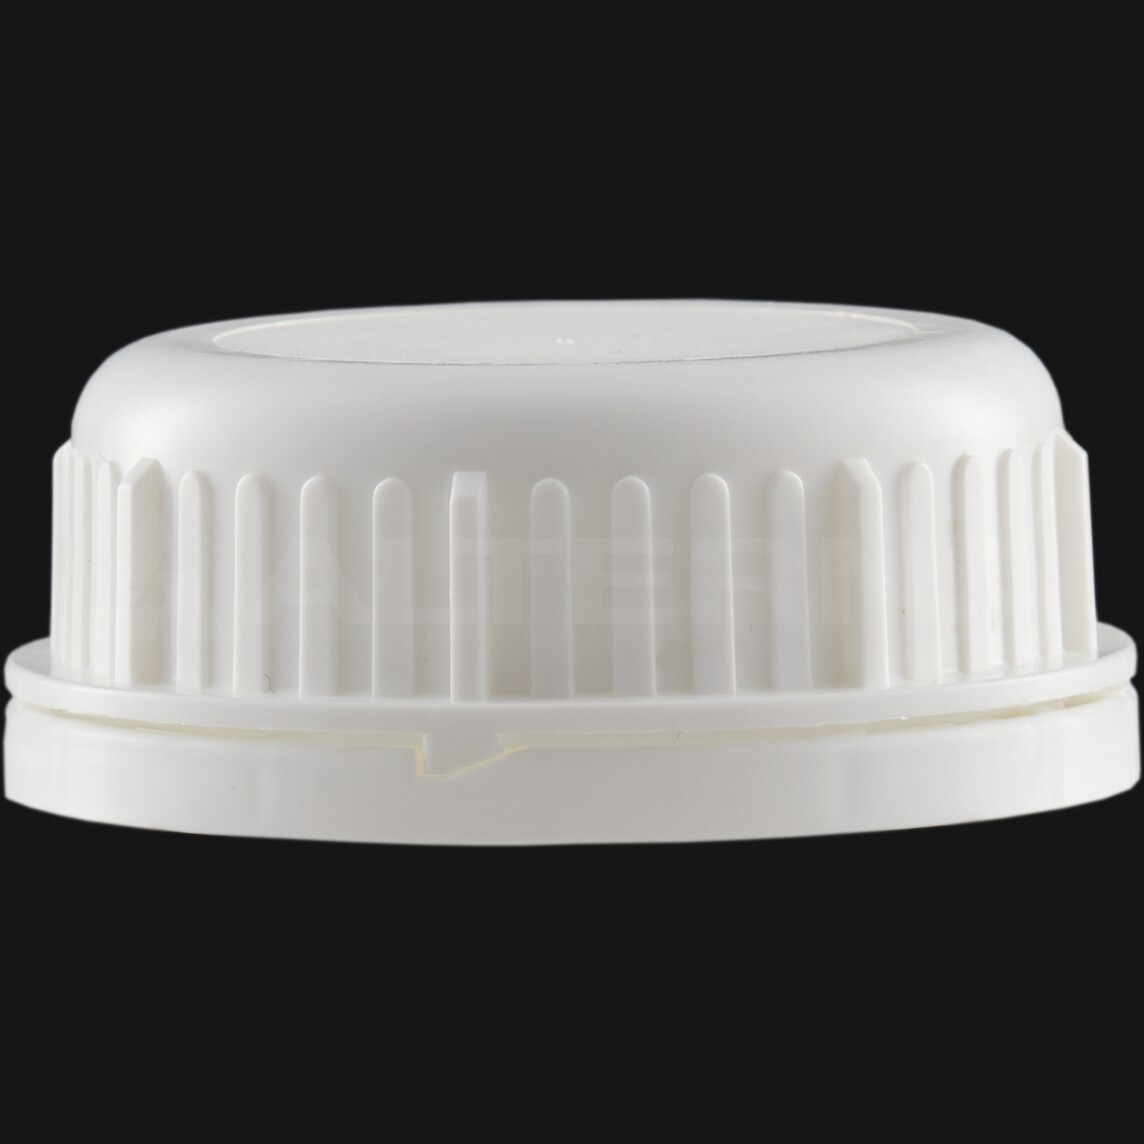 63 mm Foam Seal Secure Cap